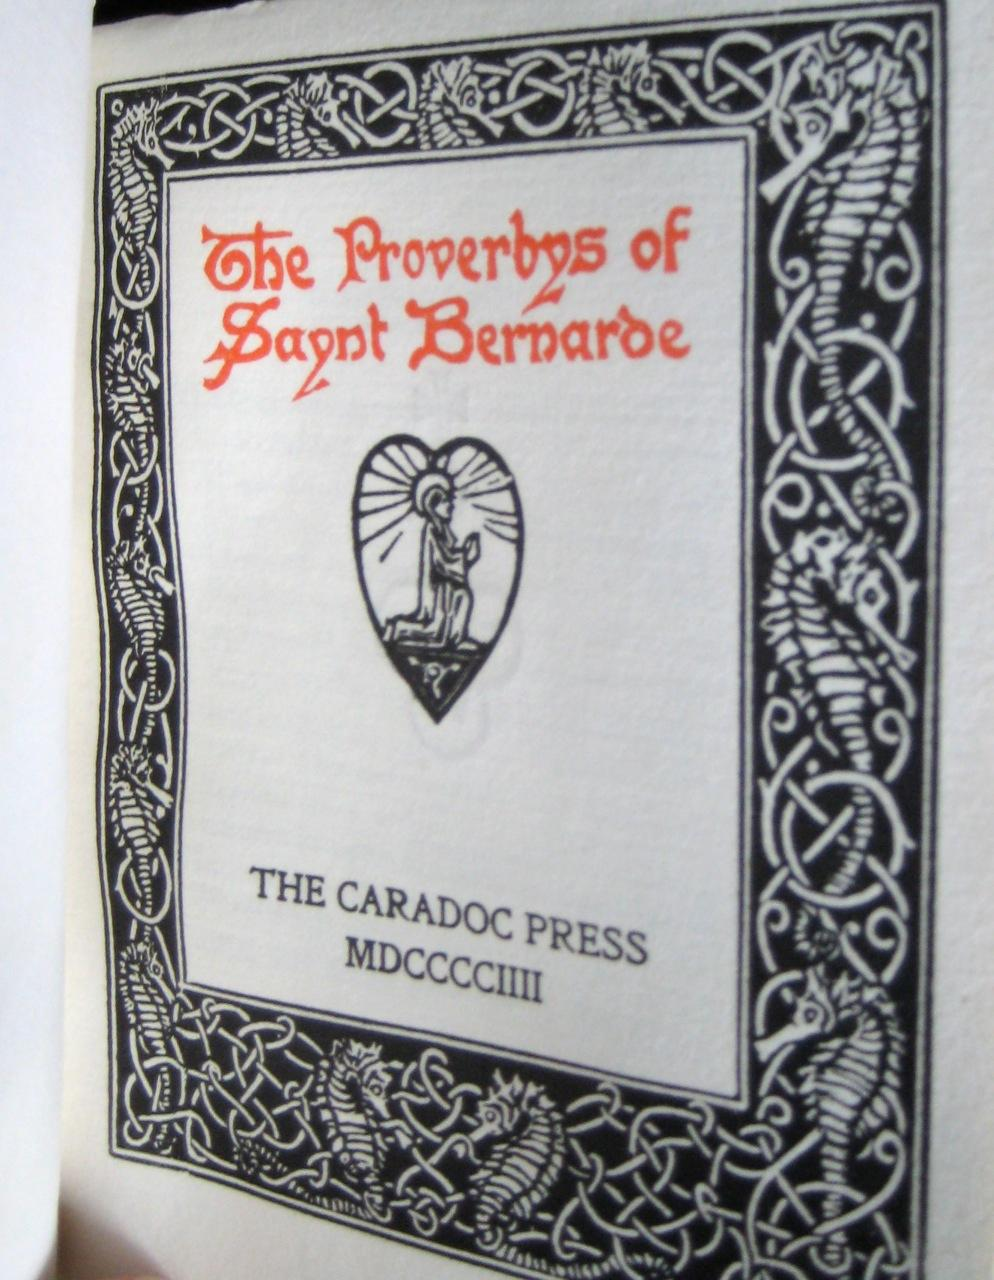 The Proverbys of Saynt Bernarde. [With a foreword by H.G. Webb] Saint Bernard of Clairvaux